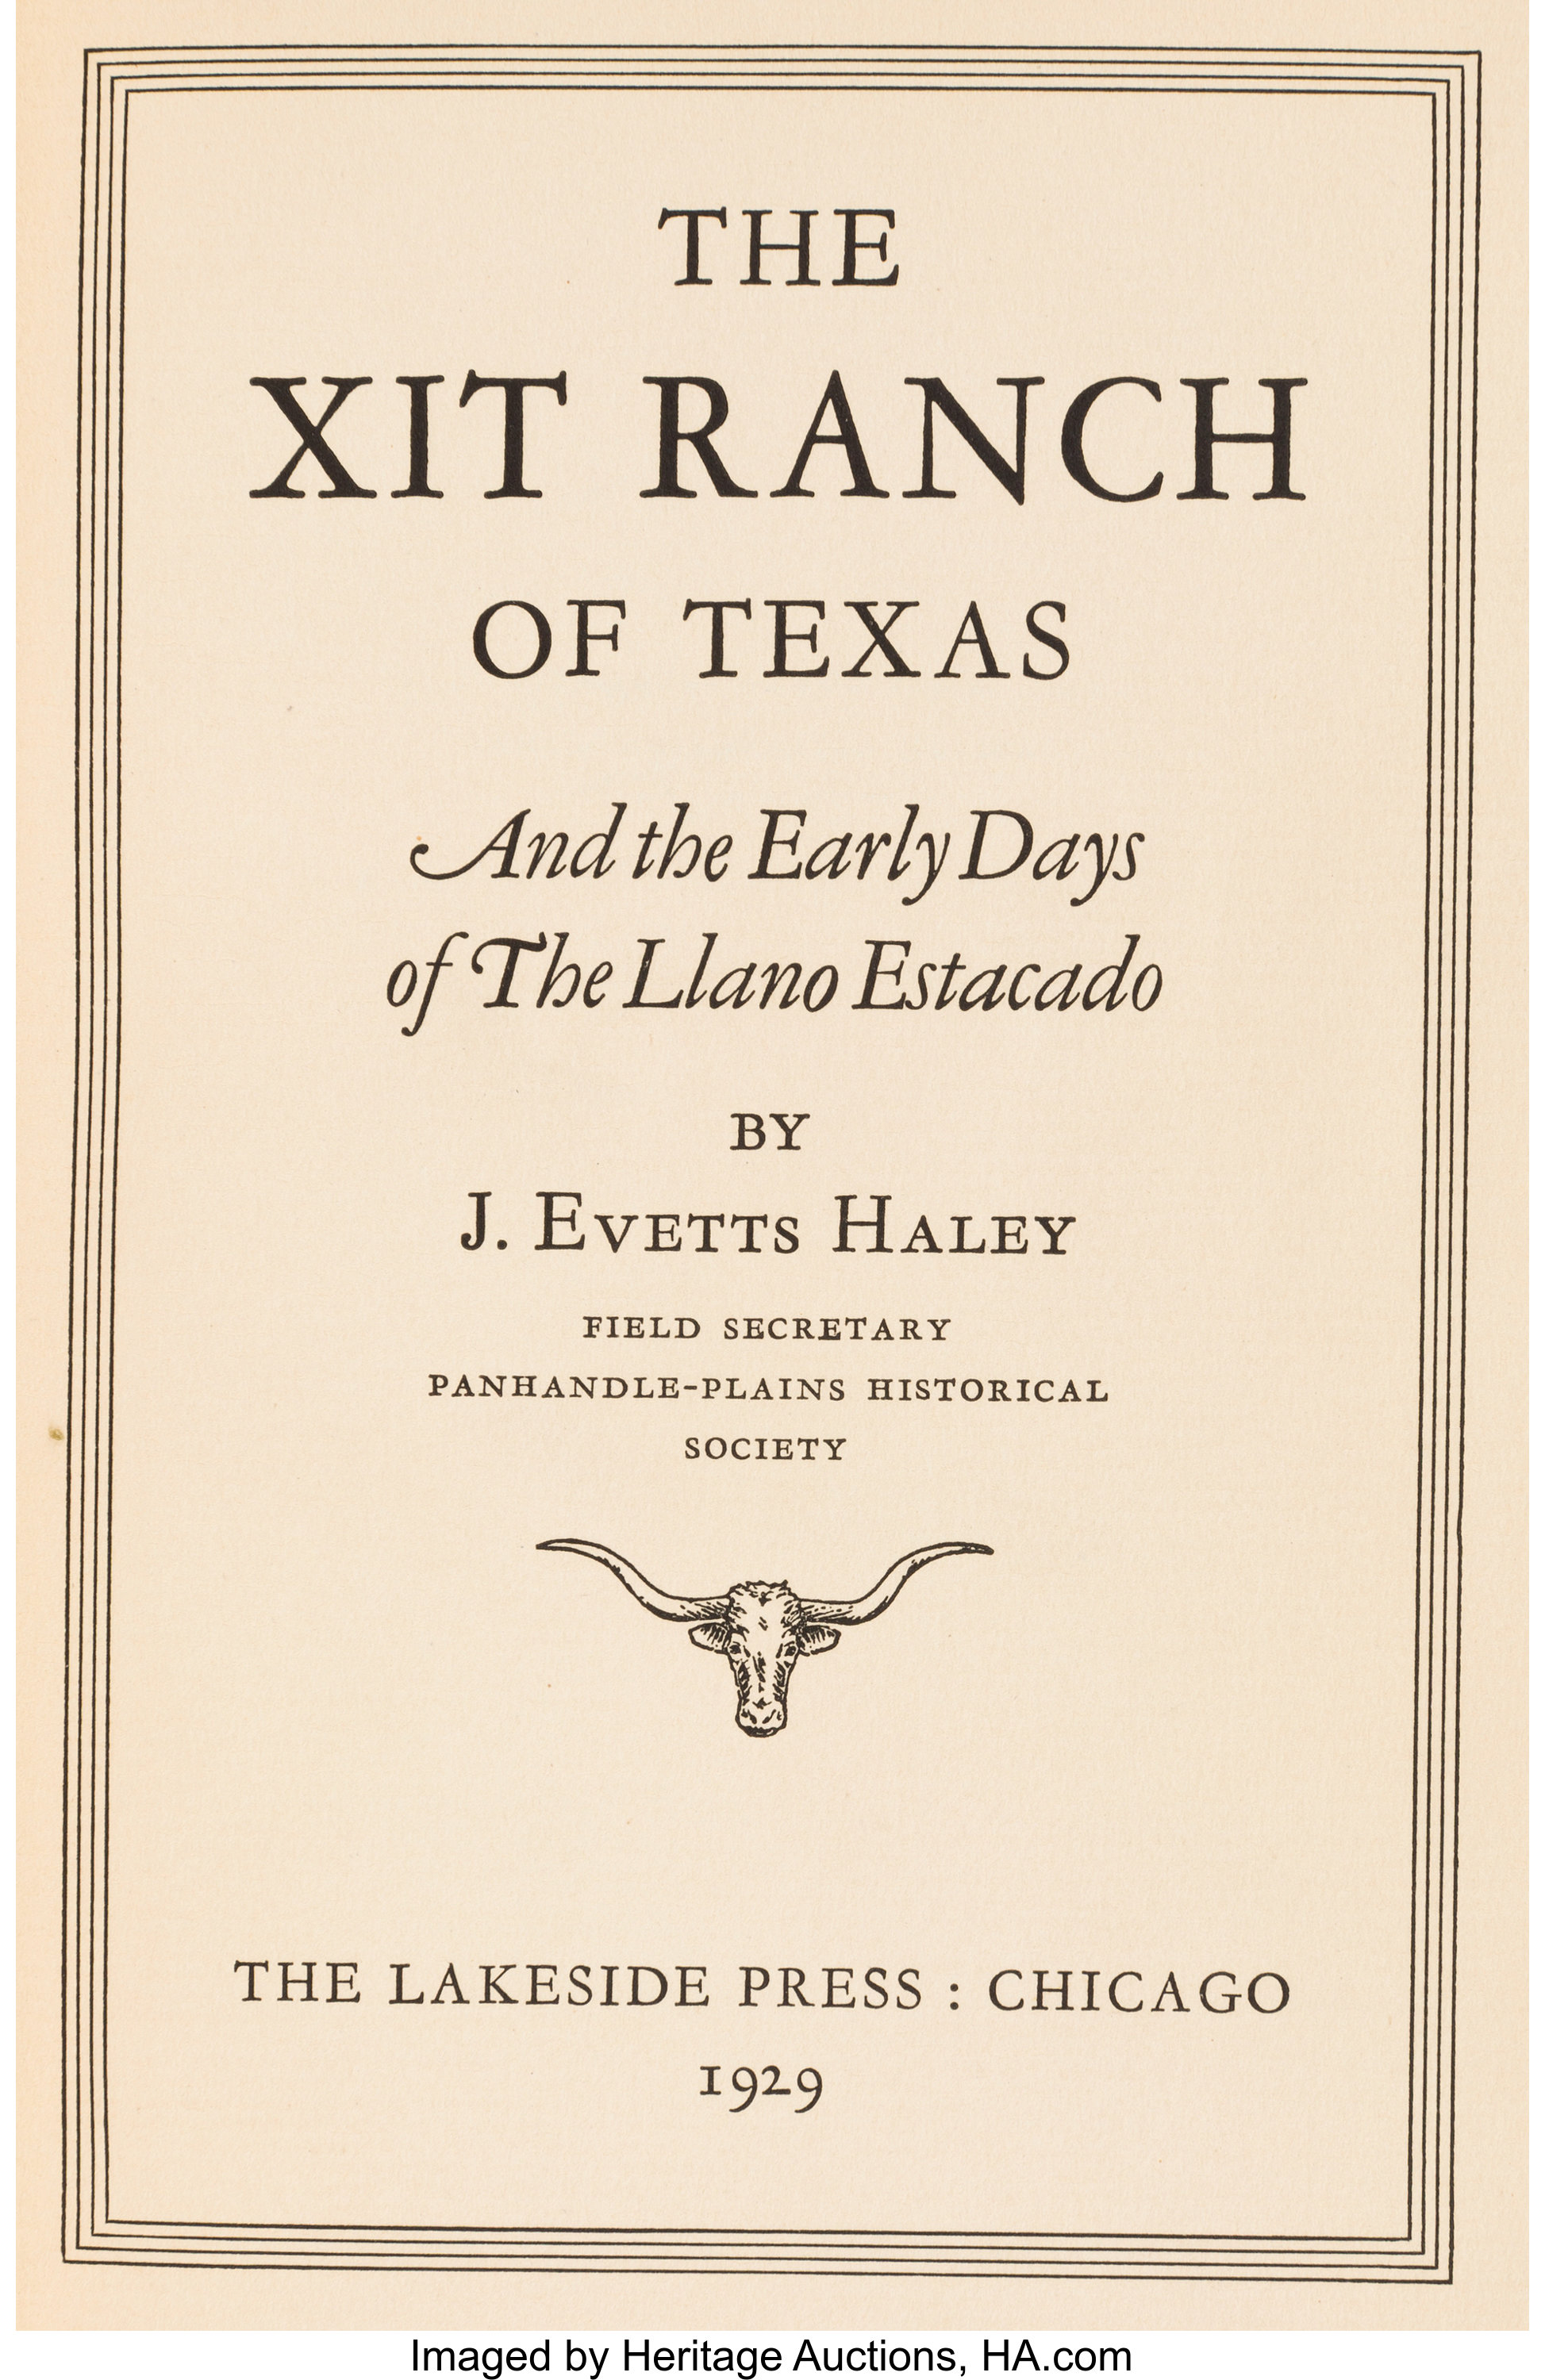 Map Of Xit Ranch Texas.J Evetts Haley The Xit Ranch Of Texas Autographs Authors Lot